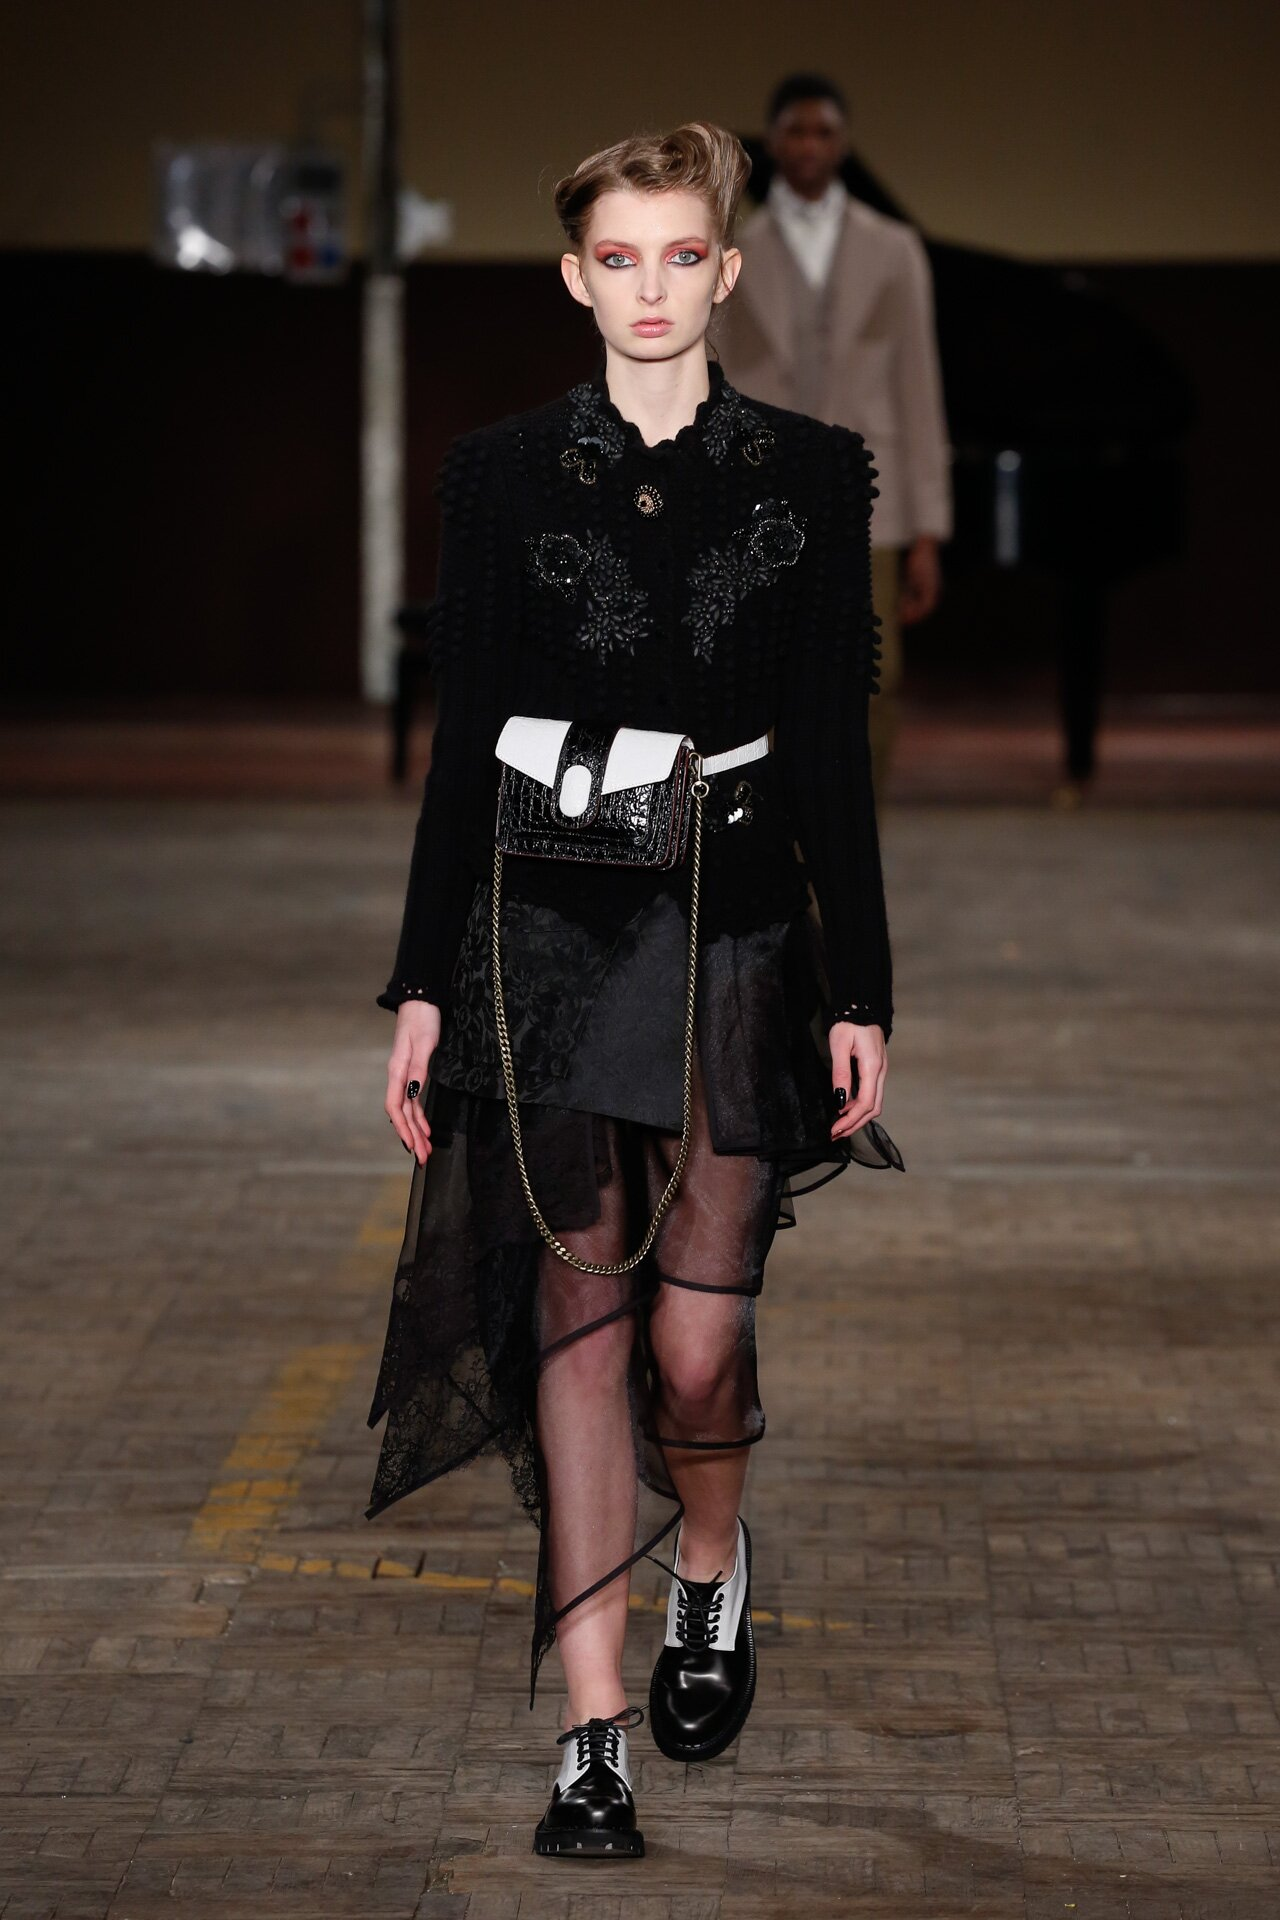 Antonio Marras Fall Winter 2018-19 Fashion Show Look 72